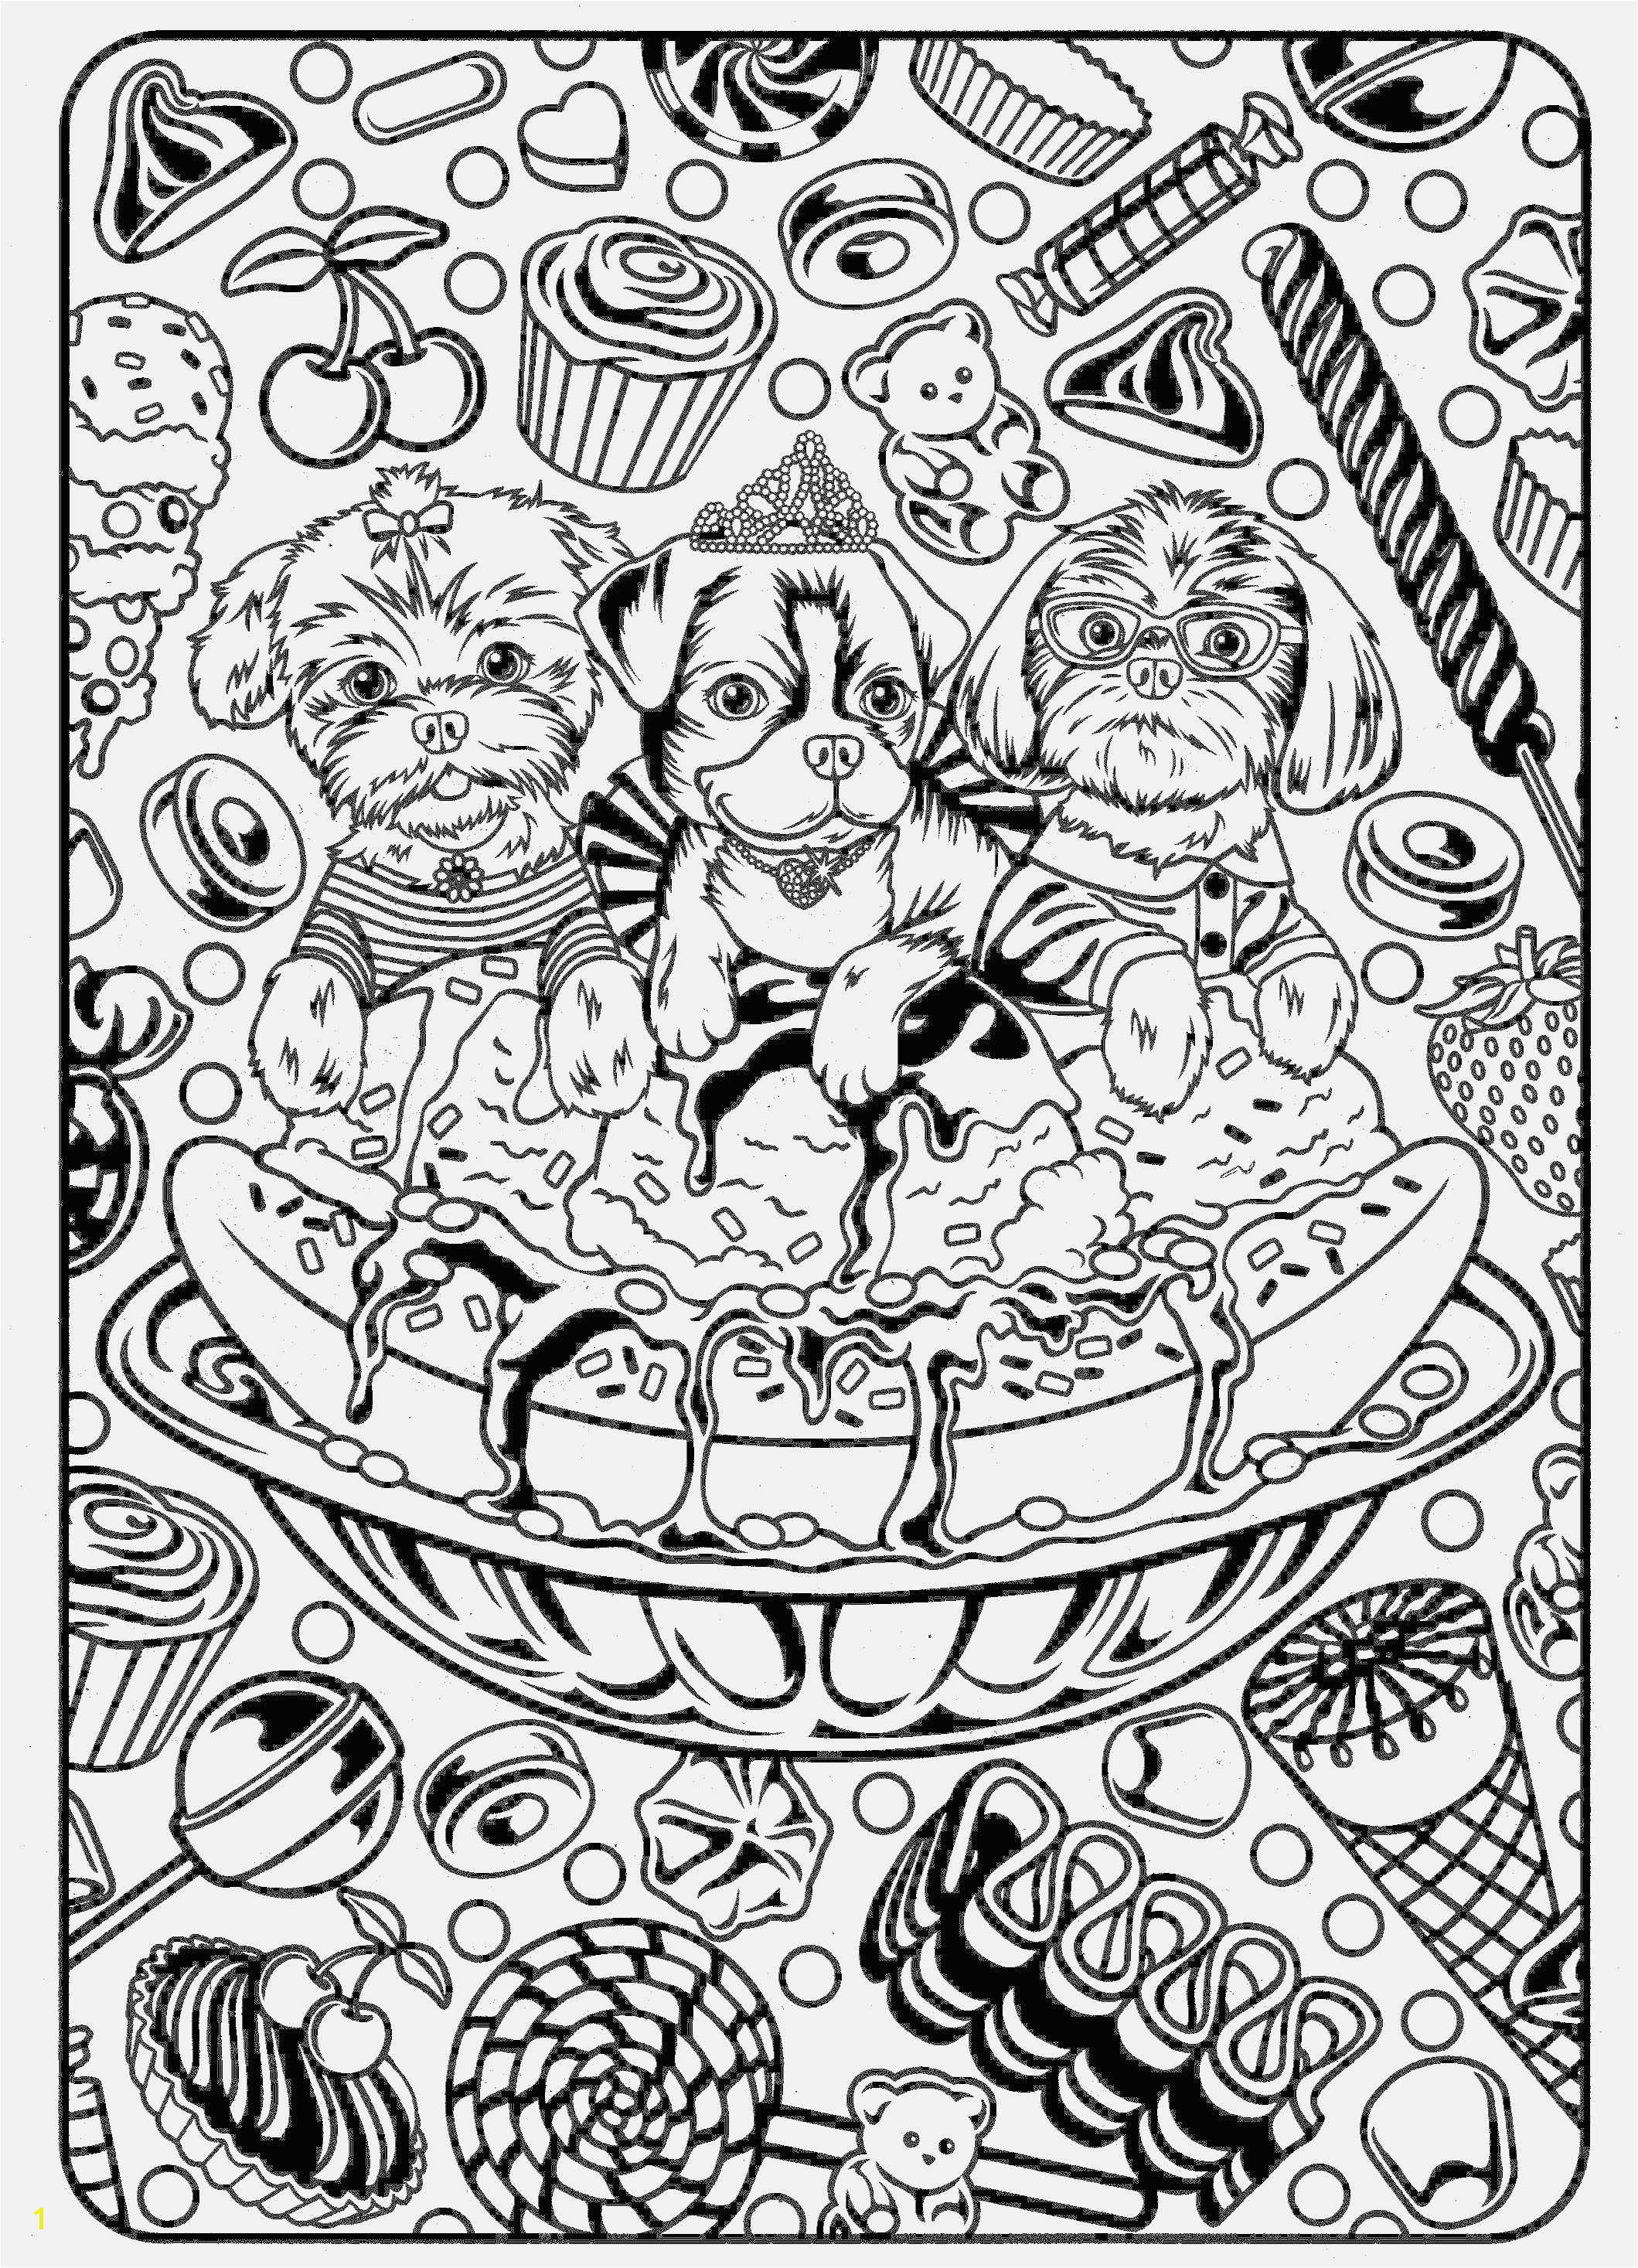 Free Printable Pokemon Coloring Pages Free Coloring Pages to Print Best Pokemon Coloring Page